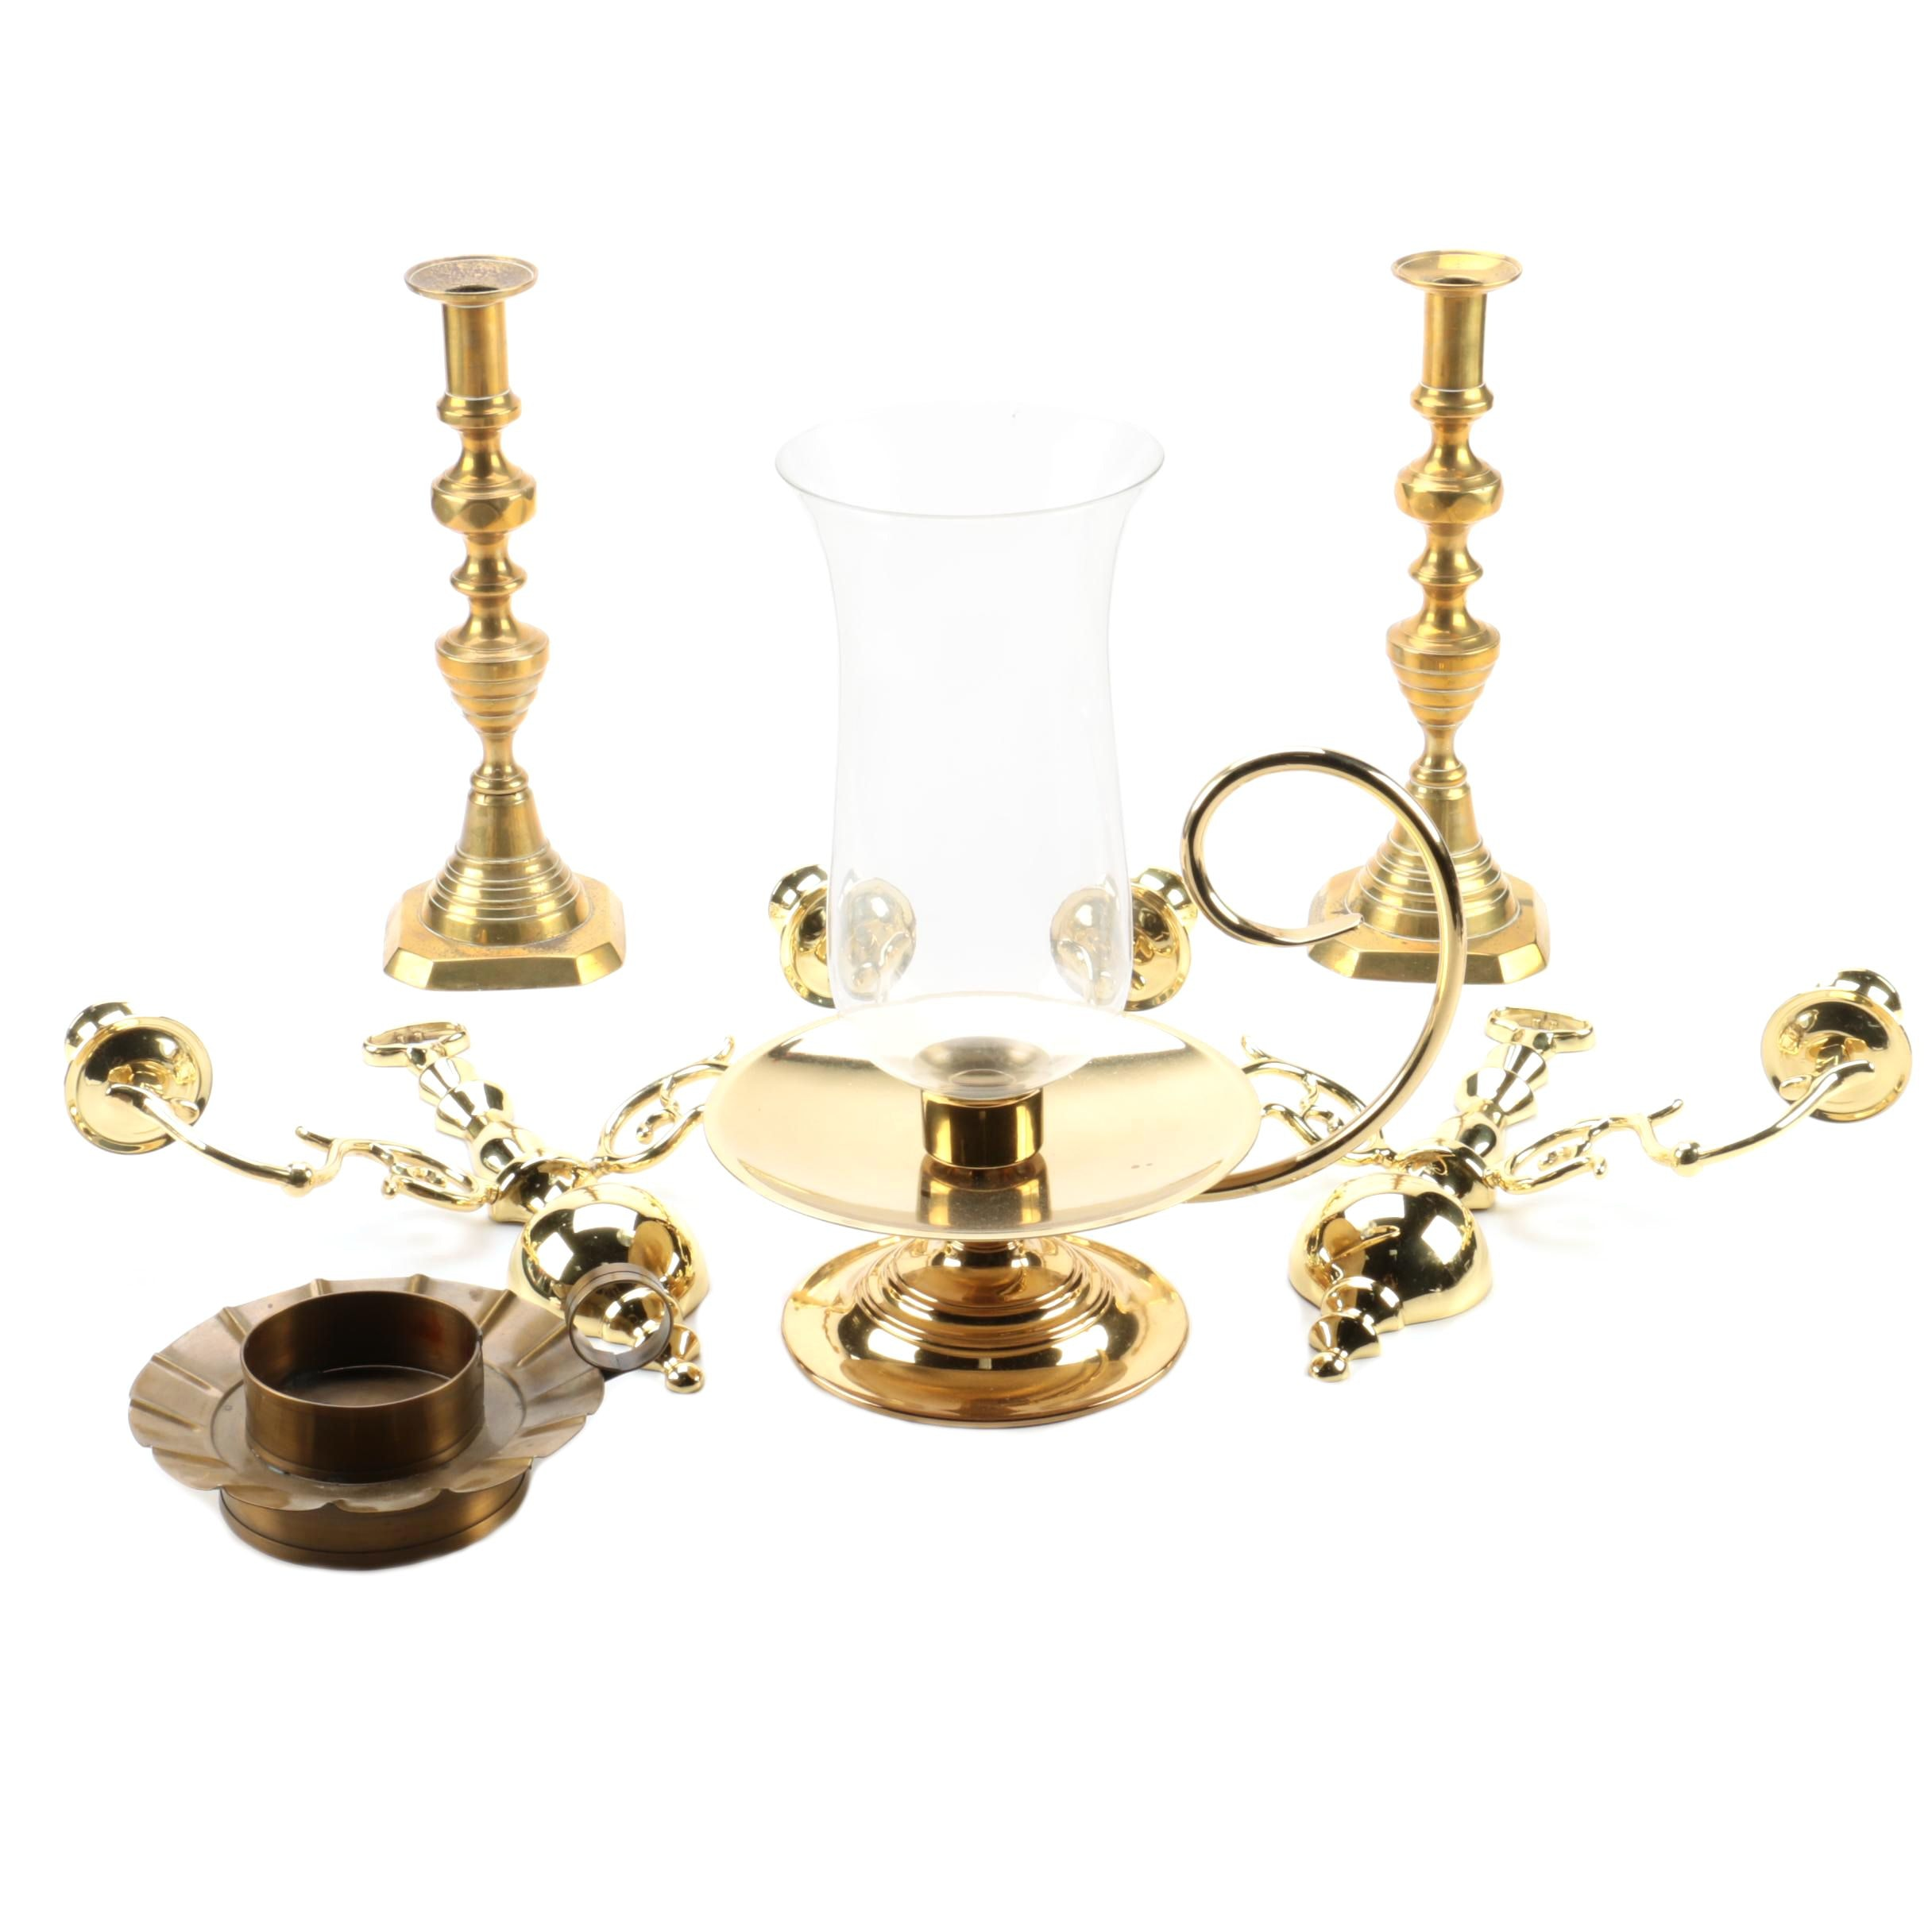 Brass Candle Holders and Sconces